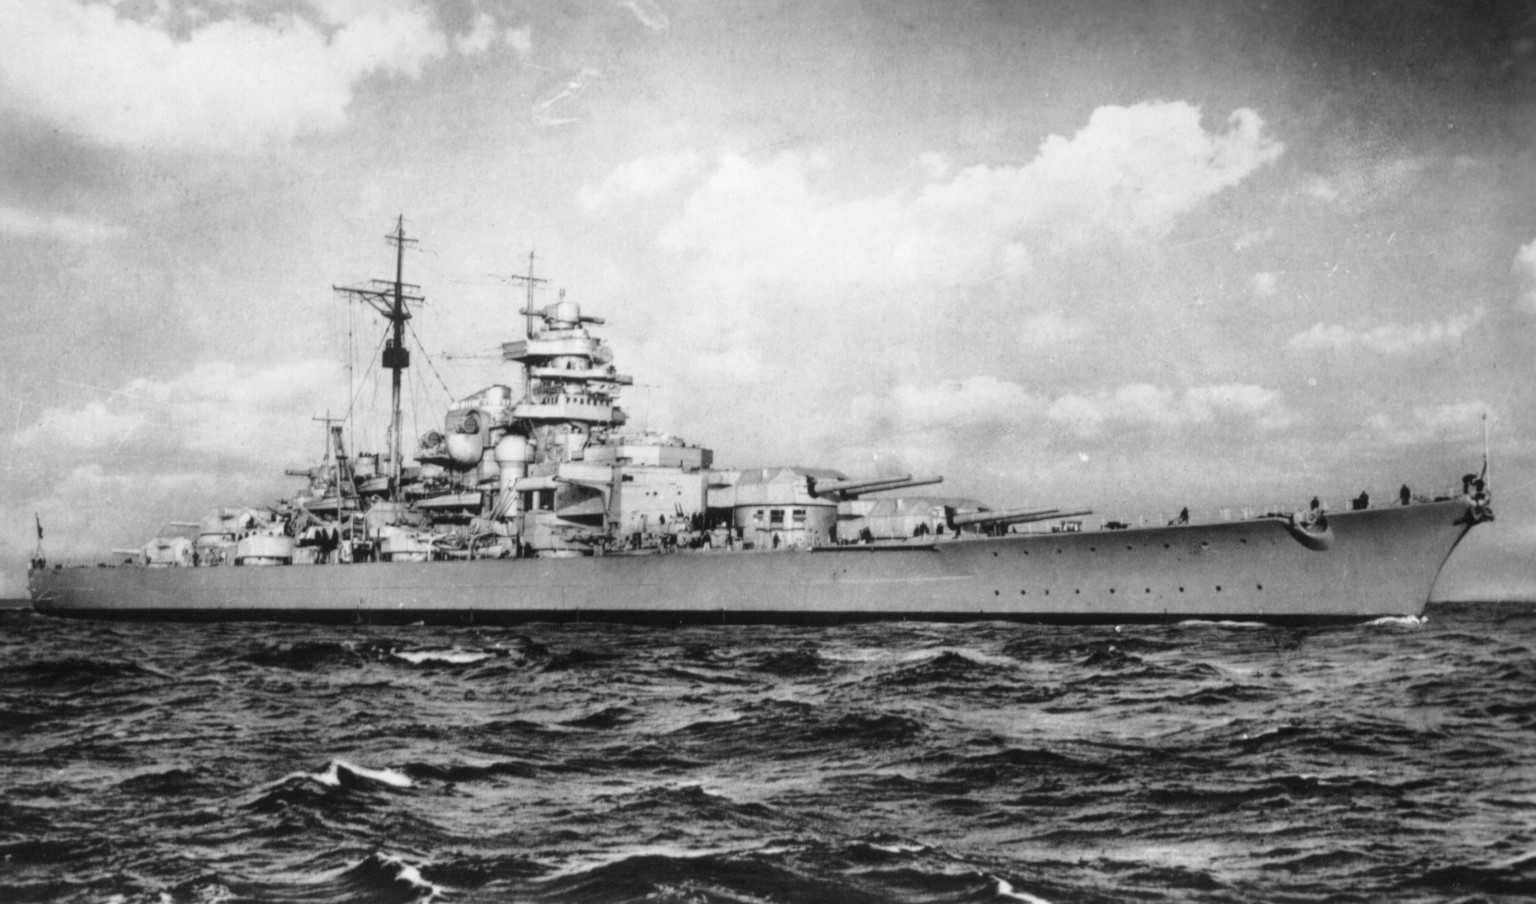 Battleship Bismarck wallpaper   ForWallpapercom 1536x904